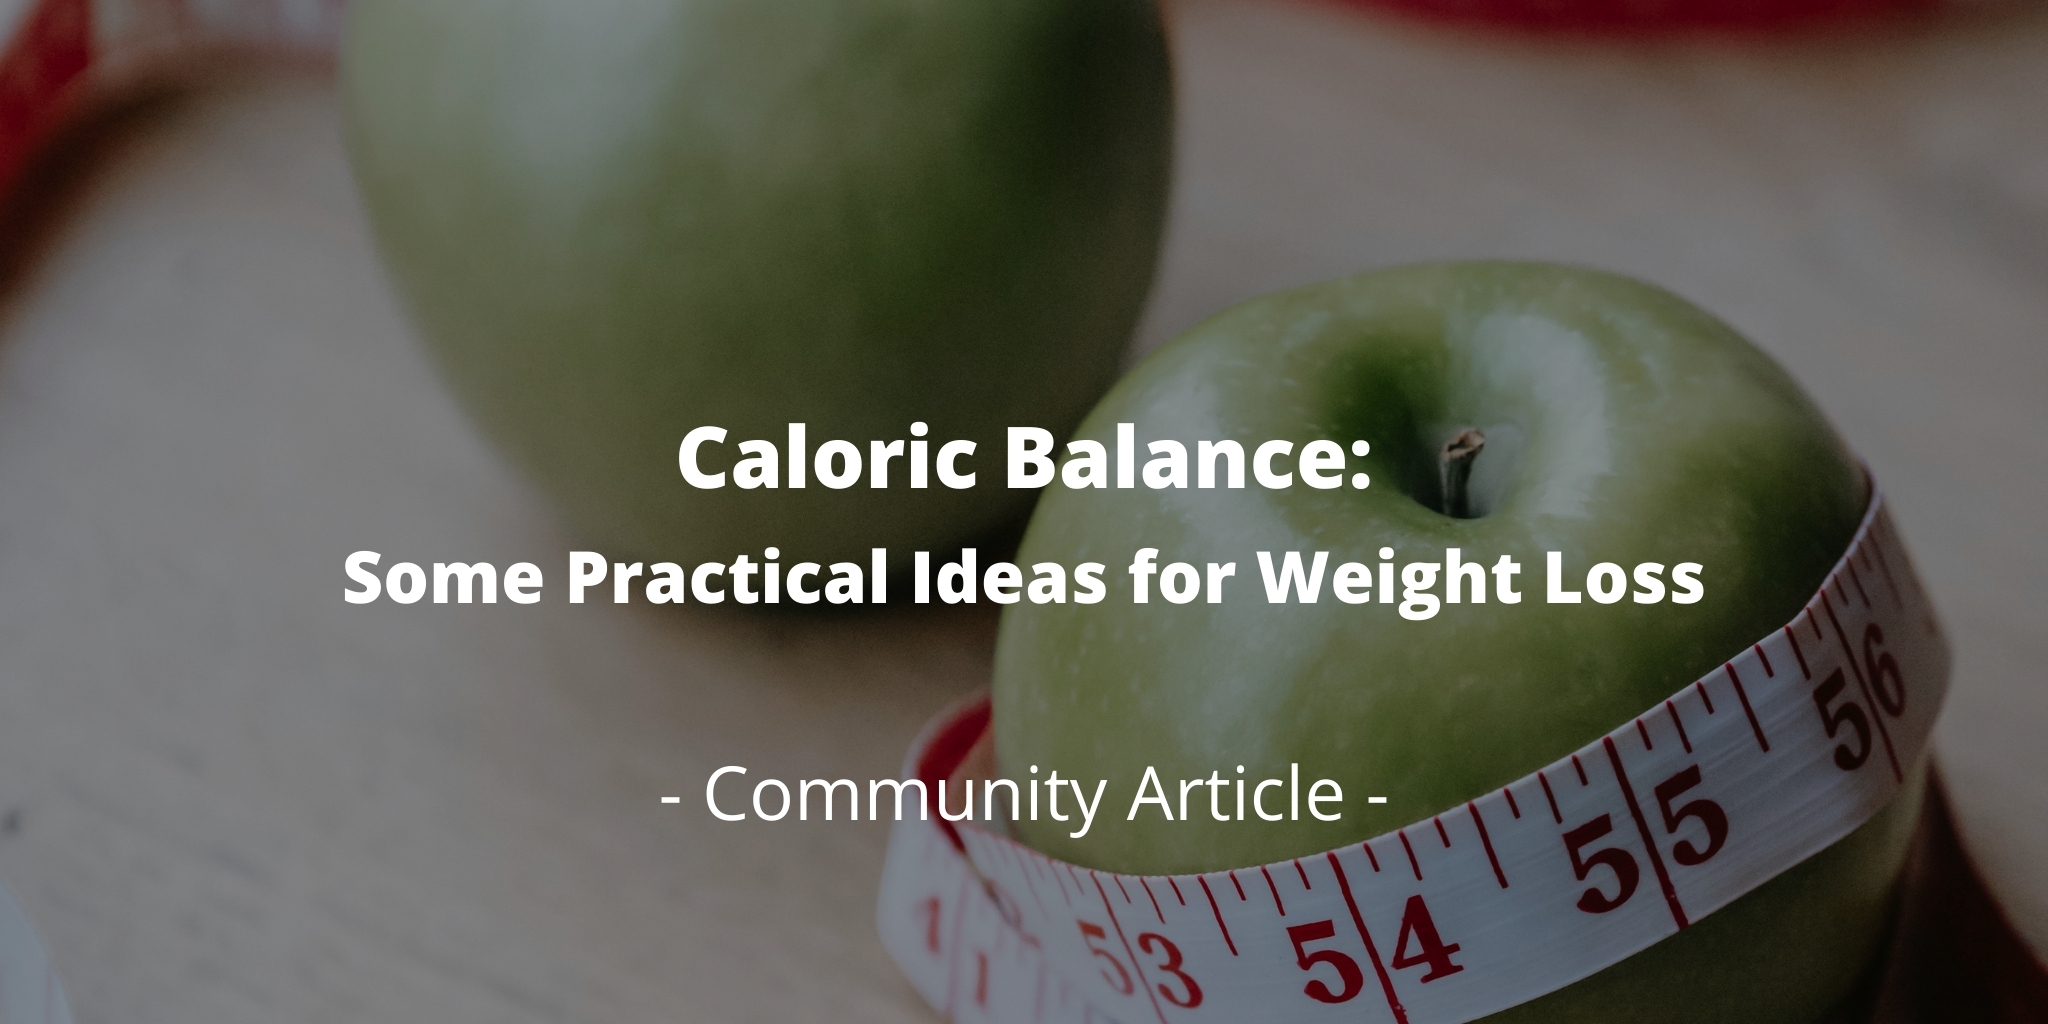 Caloric Balance: Some Practical Ideas for Weight Loss